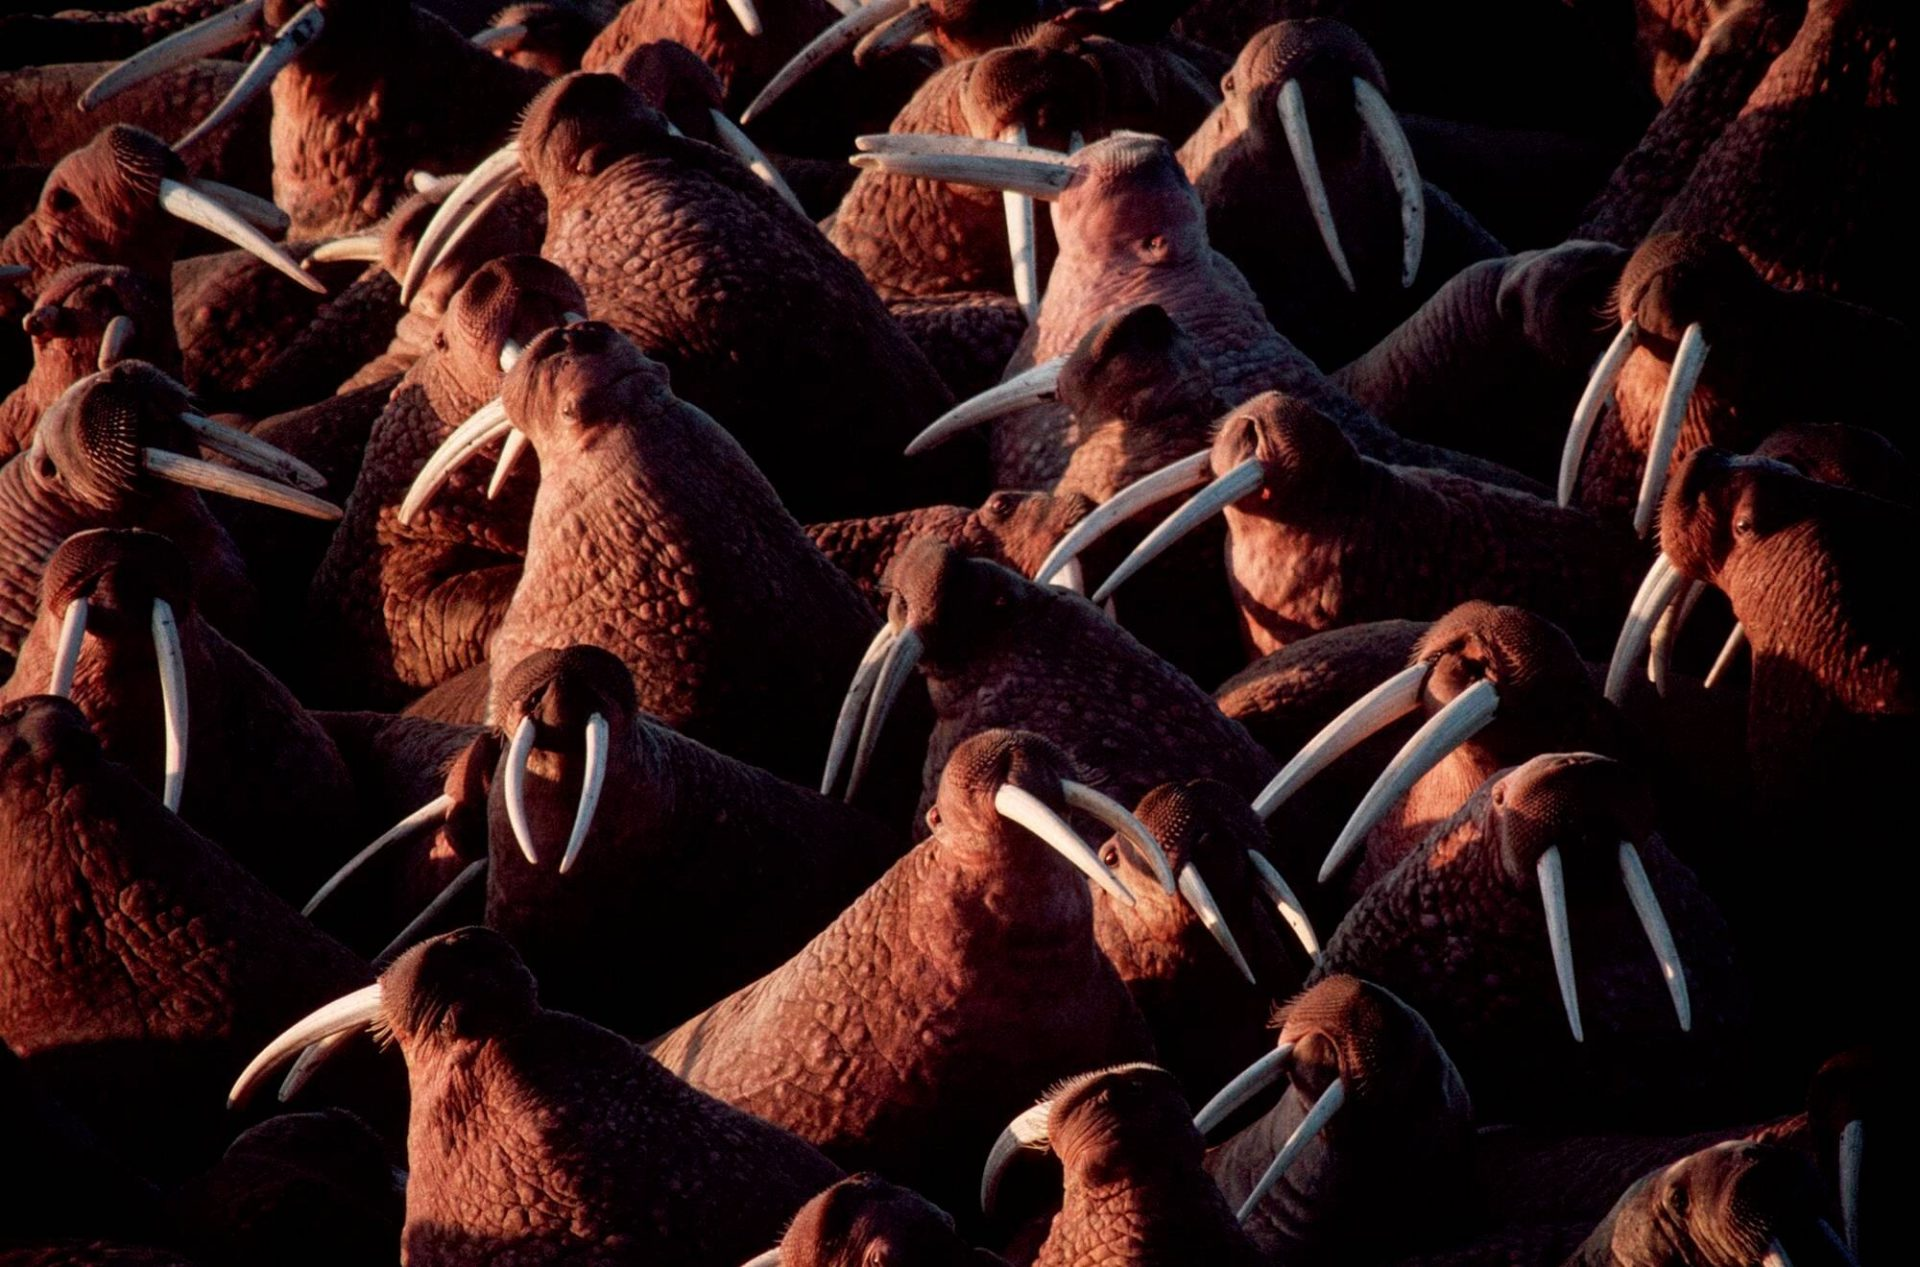 Photo: Thousands of bull walrus sun themselves at Togiak National Wildlife Refuge in Alaska.